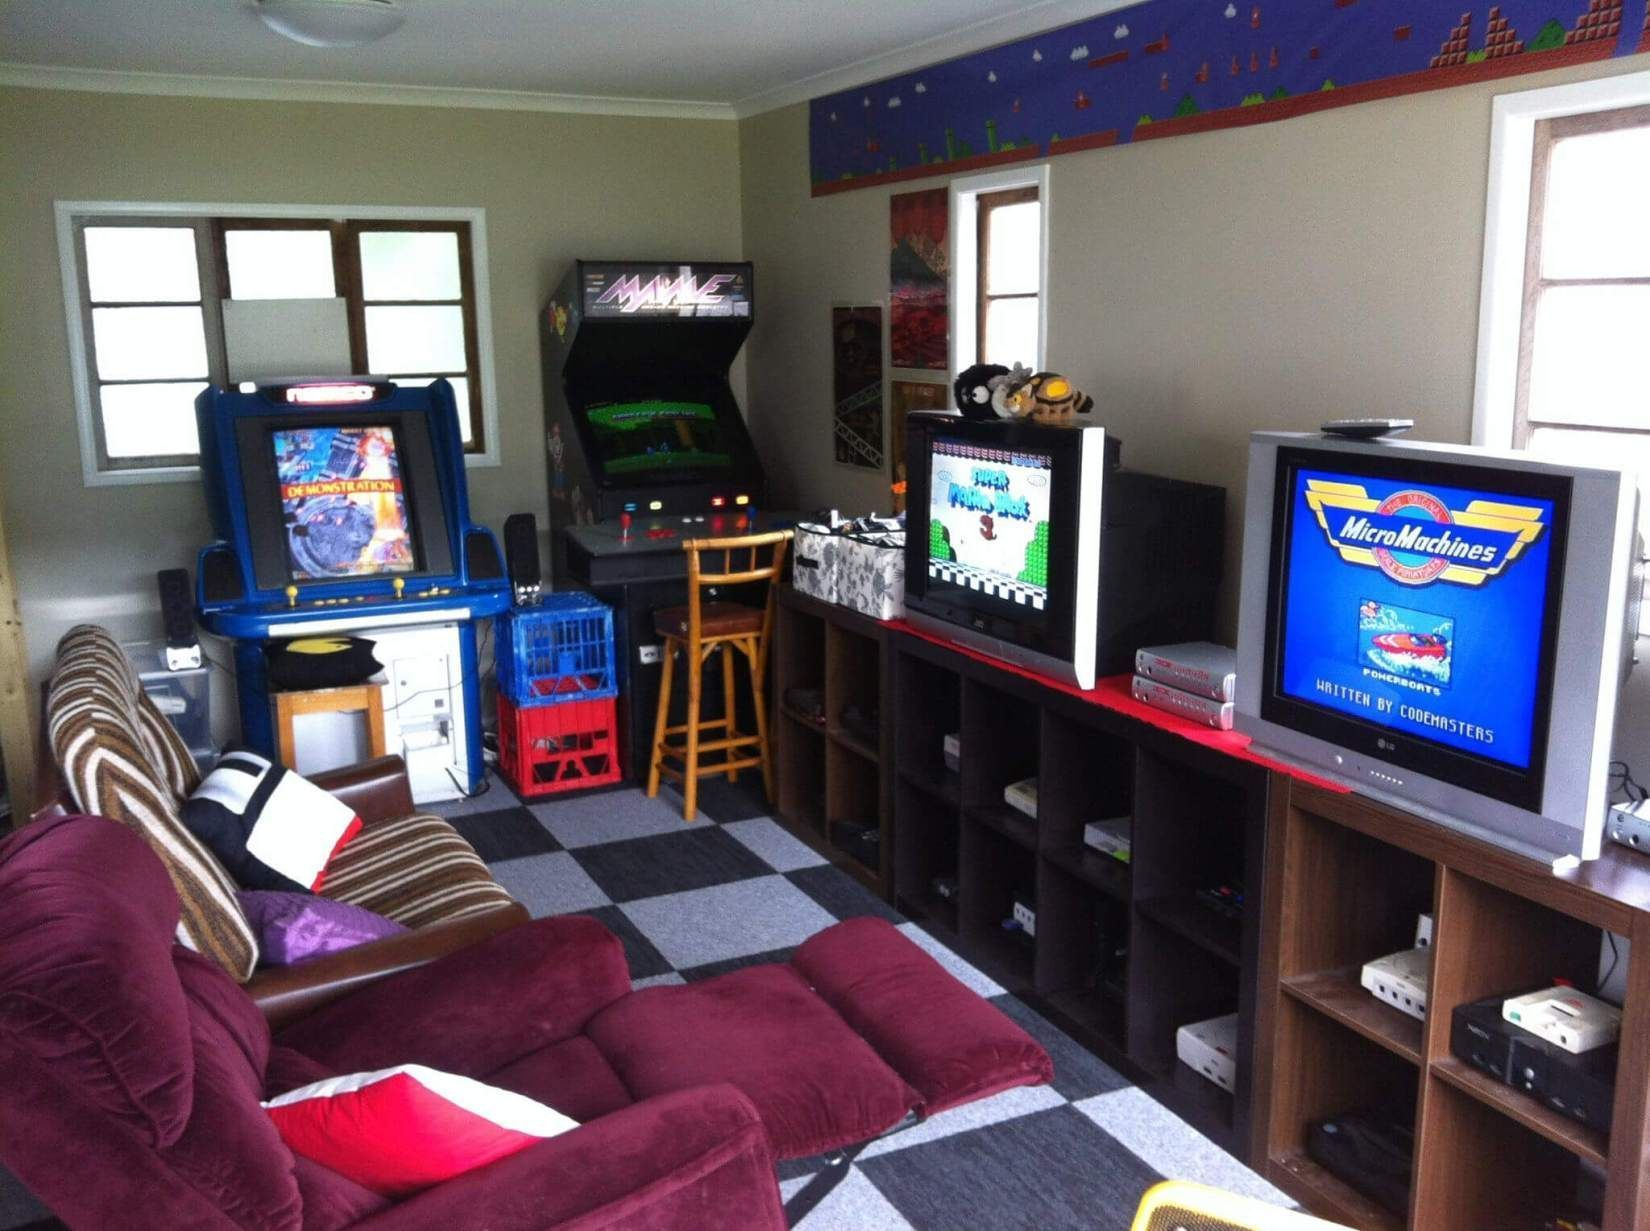 40 Best Game Room Ideas Game Room Setup For Adults Kids Small Game Rooms Game Room Design Small Room Design